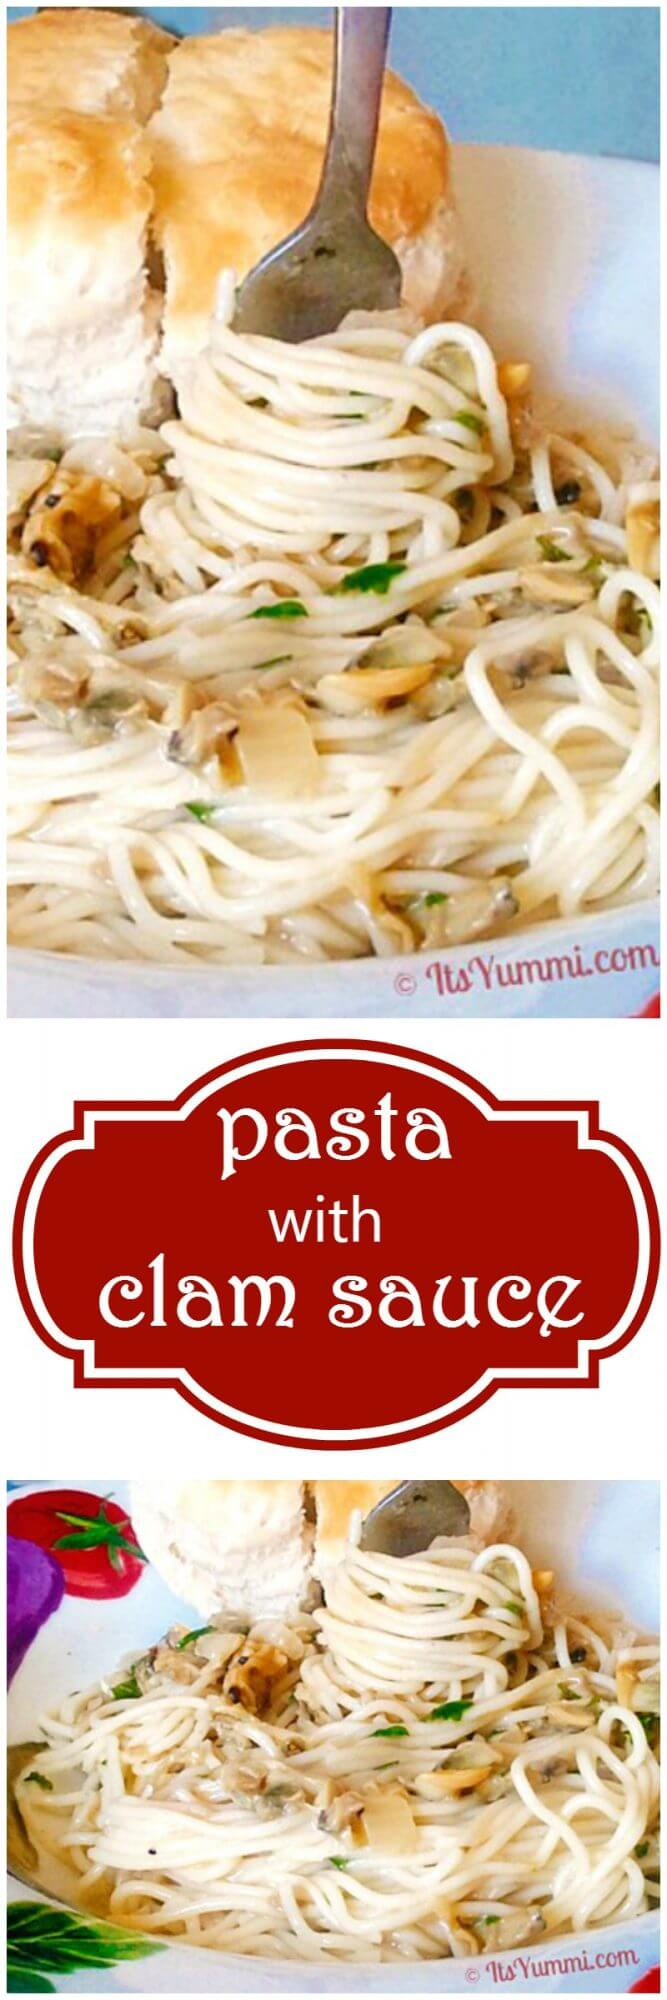 Pasta with Clam Sauce - Just 5 ingredients and 15 minutes to make this easy dinner recipe! - Recipe on itsyummi.com